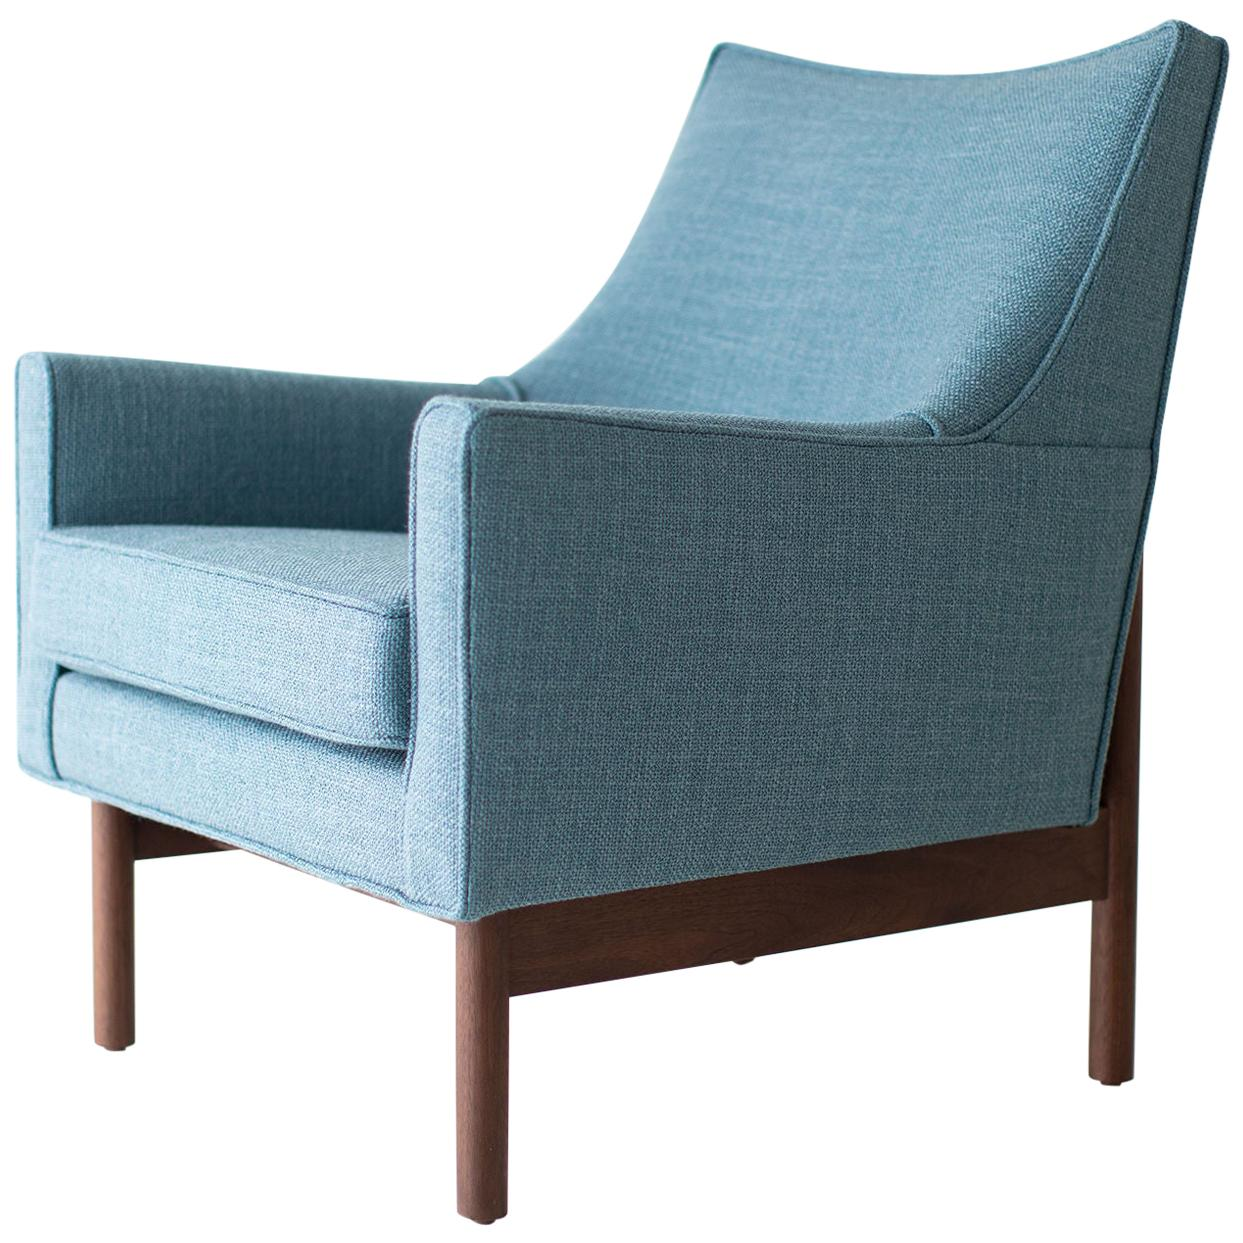 Lawrence Peabody Bracket Back Lounge Chair for Craft Associates